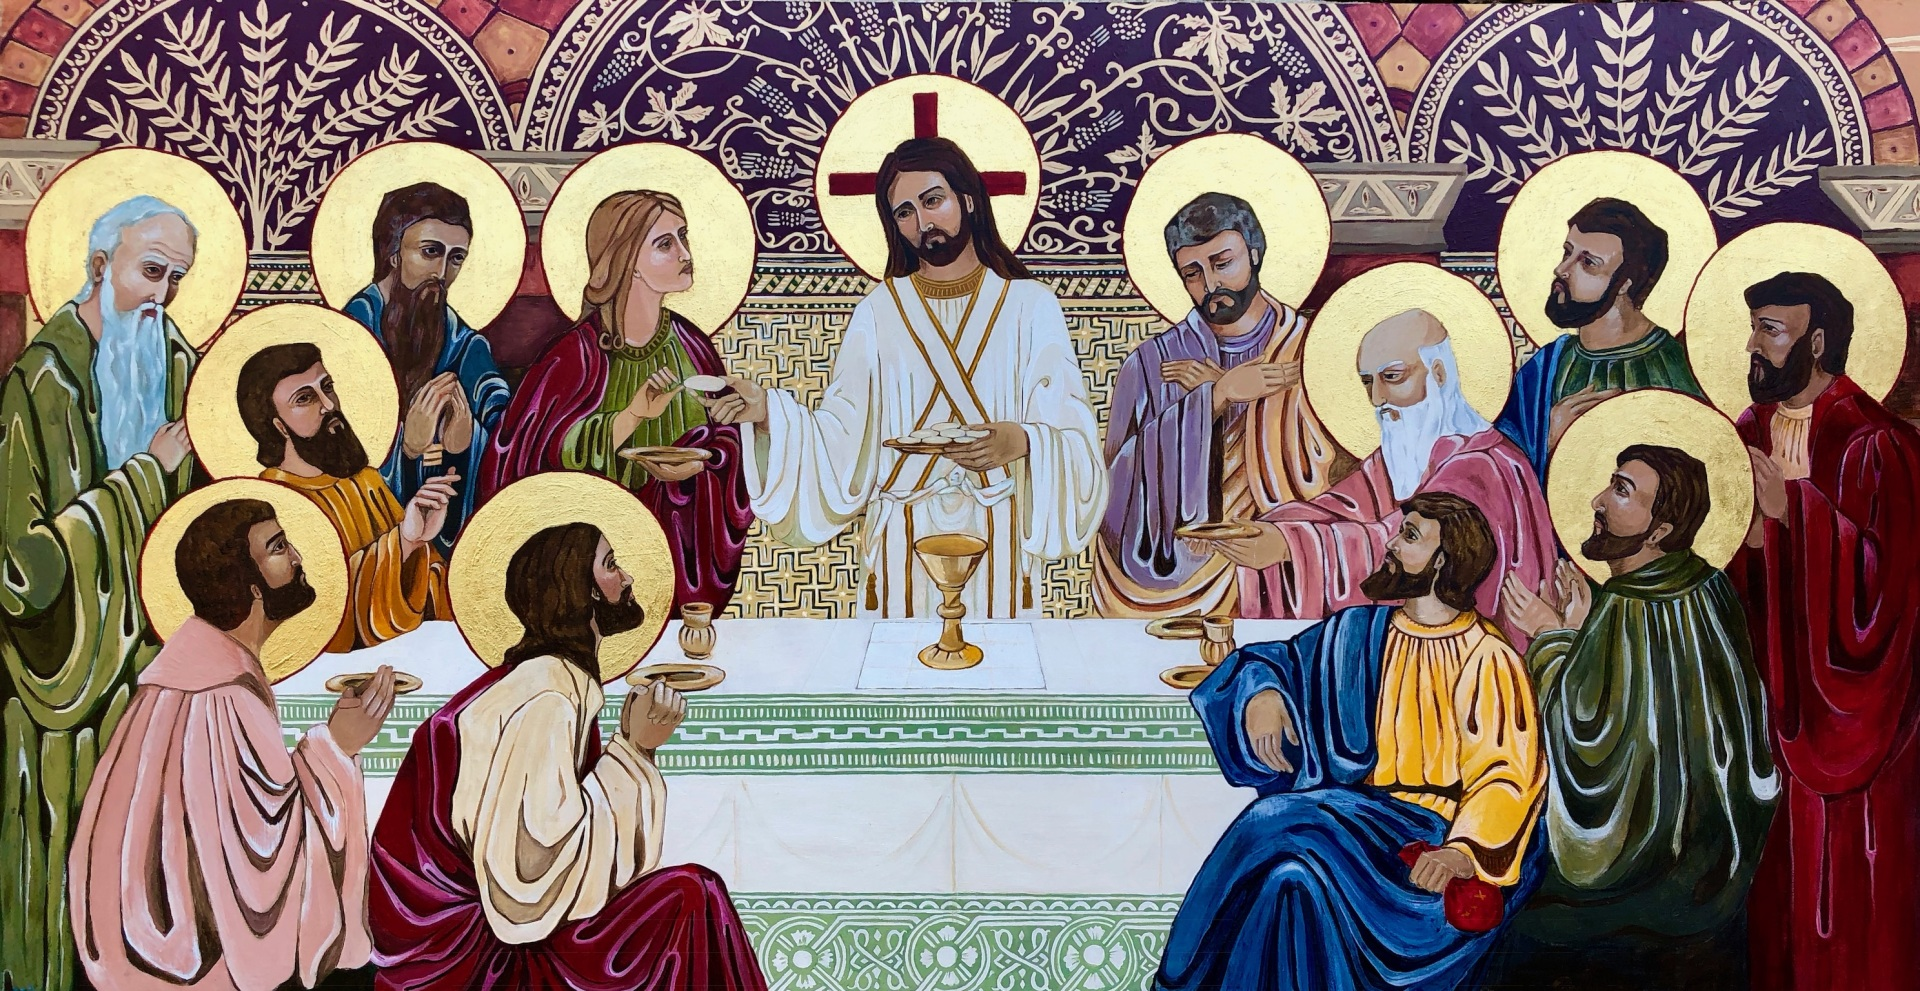 the last supper, Jesus, angels, Catholic art, religious art, holy images, iconography